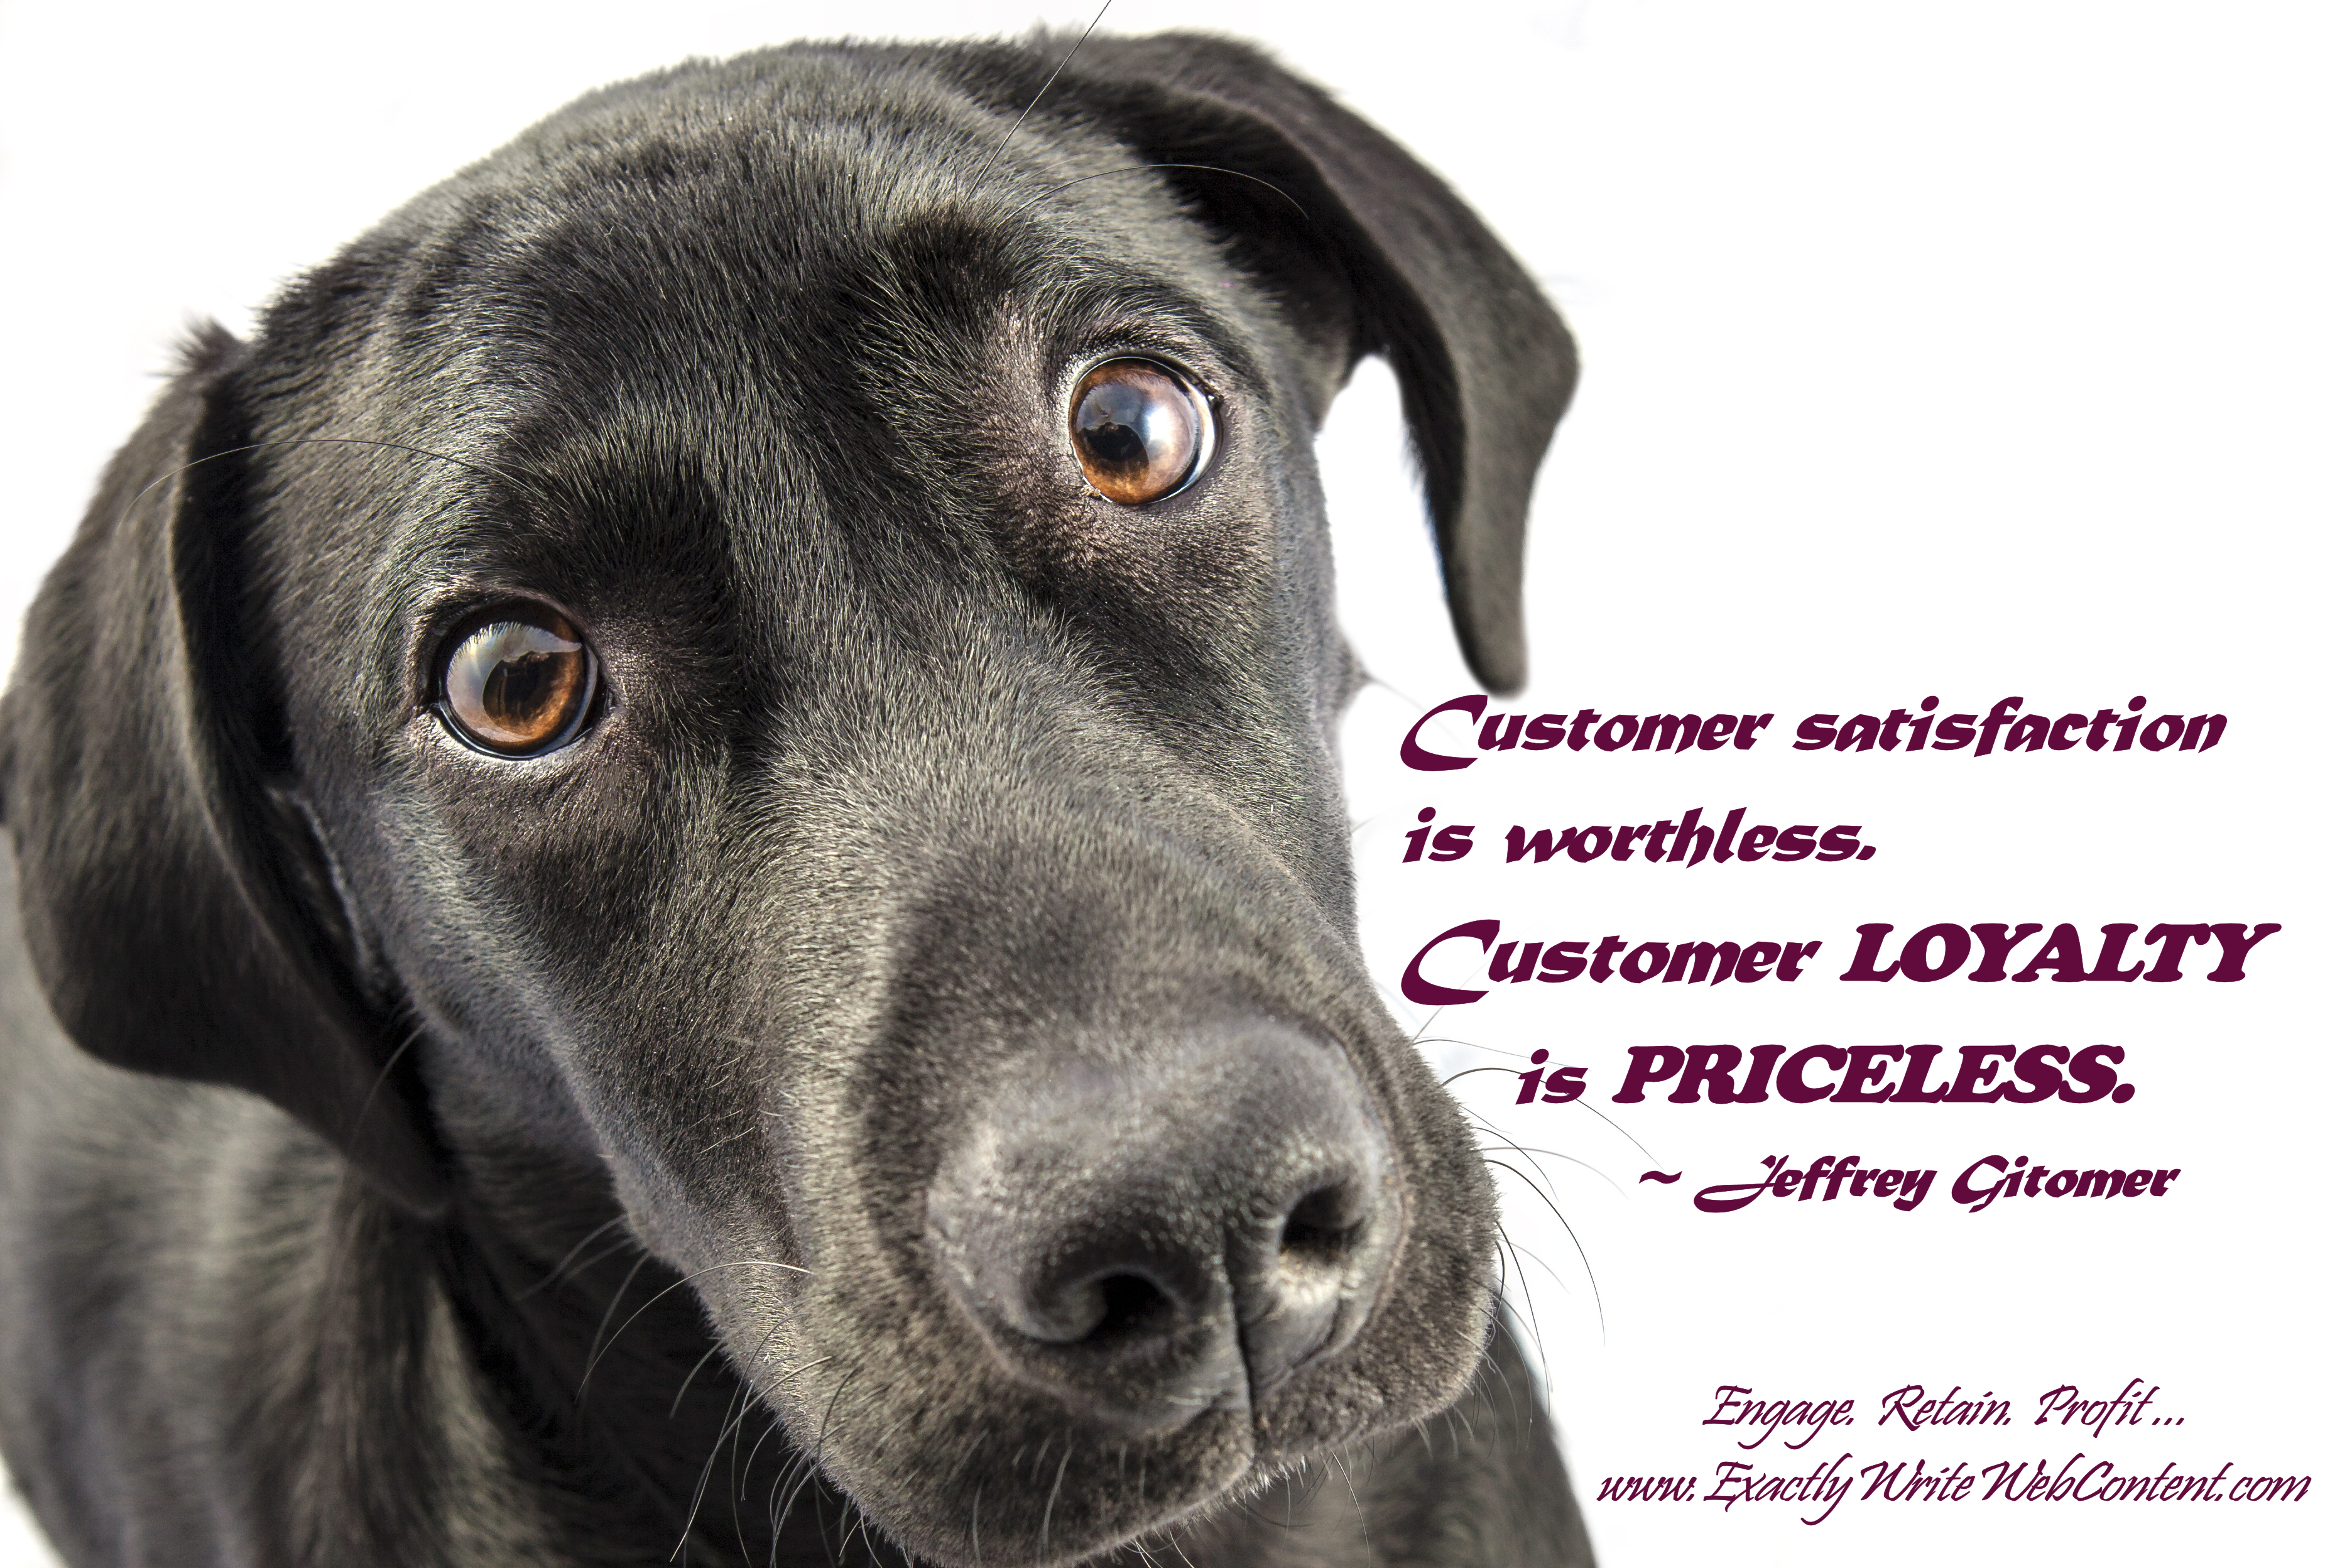 Customer Loyalty is Priceless